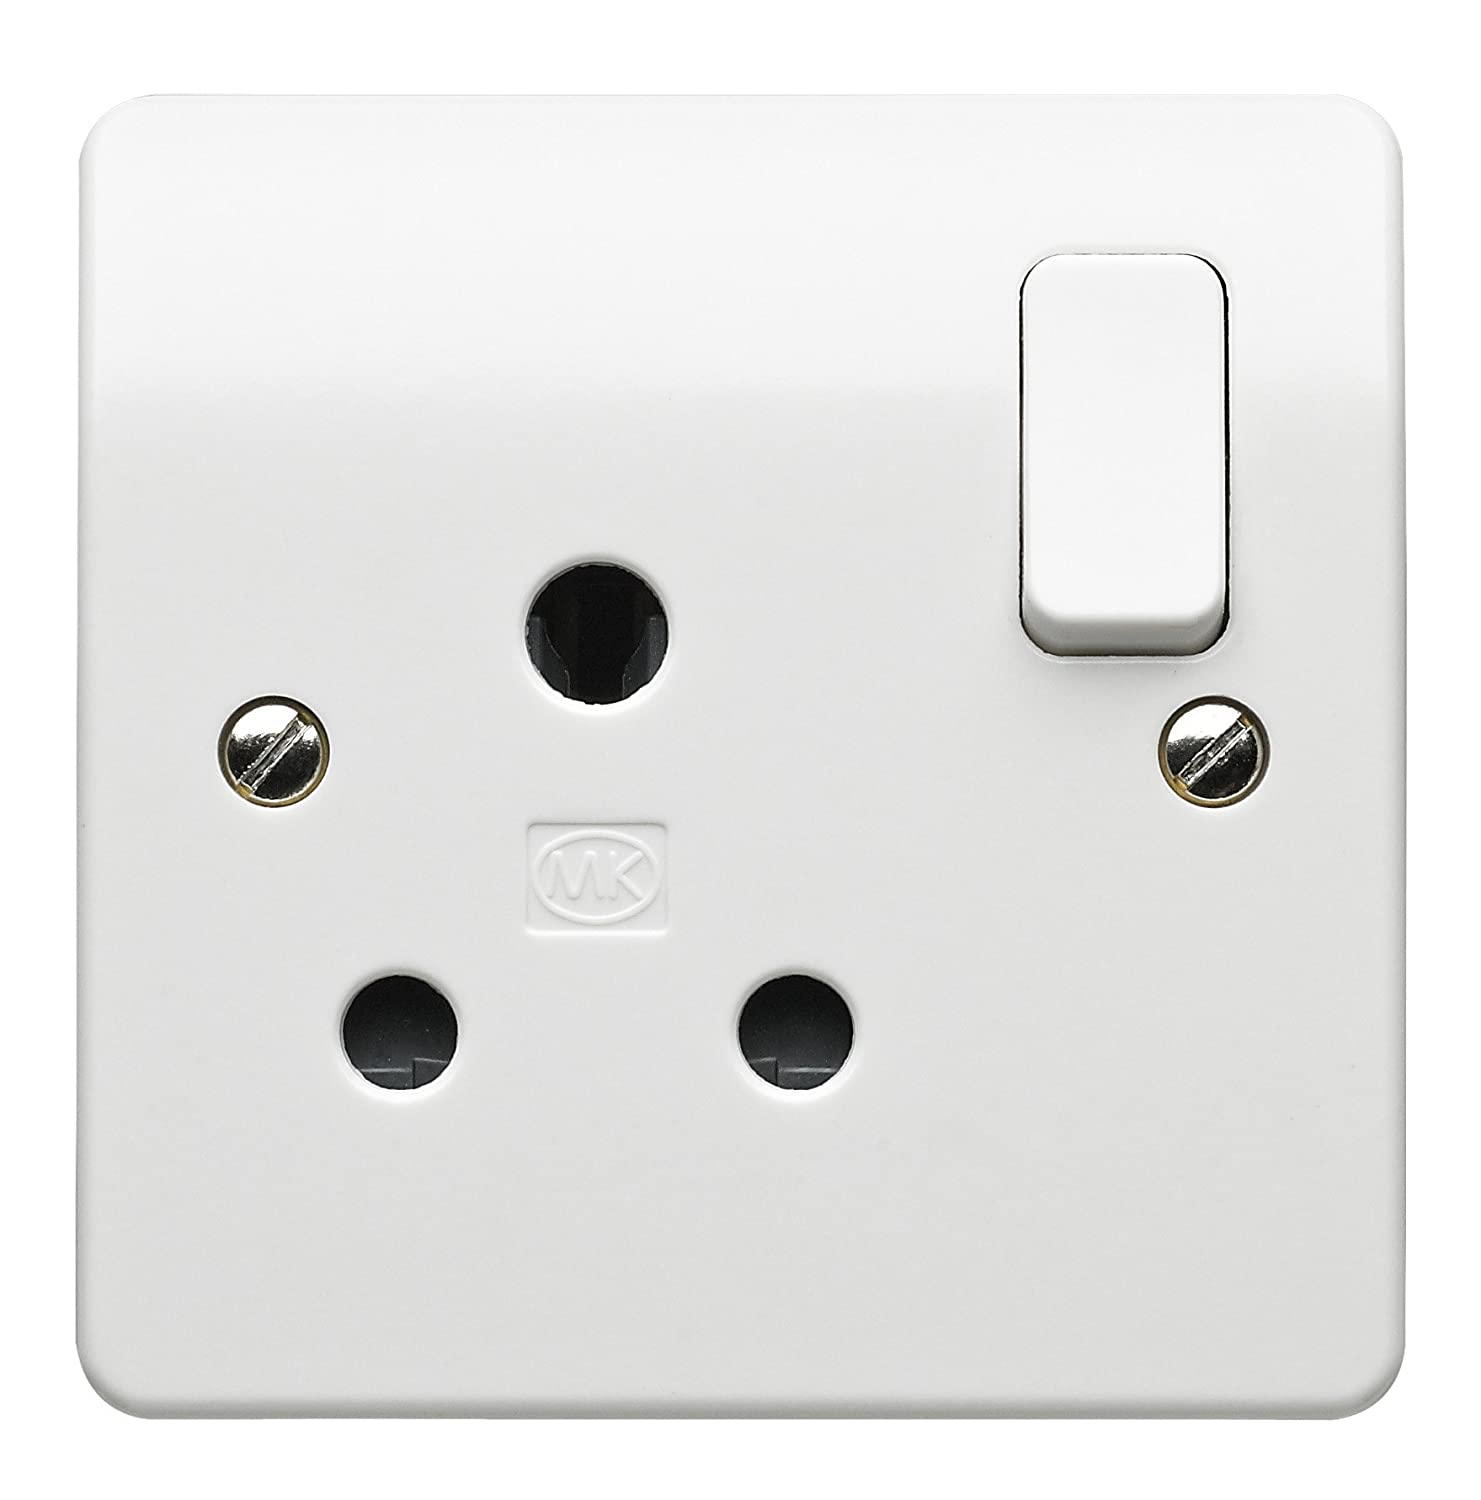 MK K2893WHI 15 amp 1-Gang Round-Pin Switch Socket: Amazon.co.uk: DIY ...